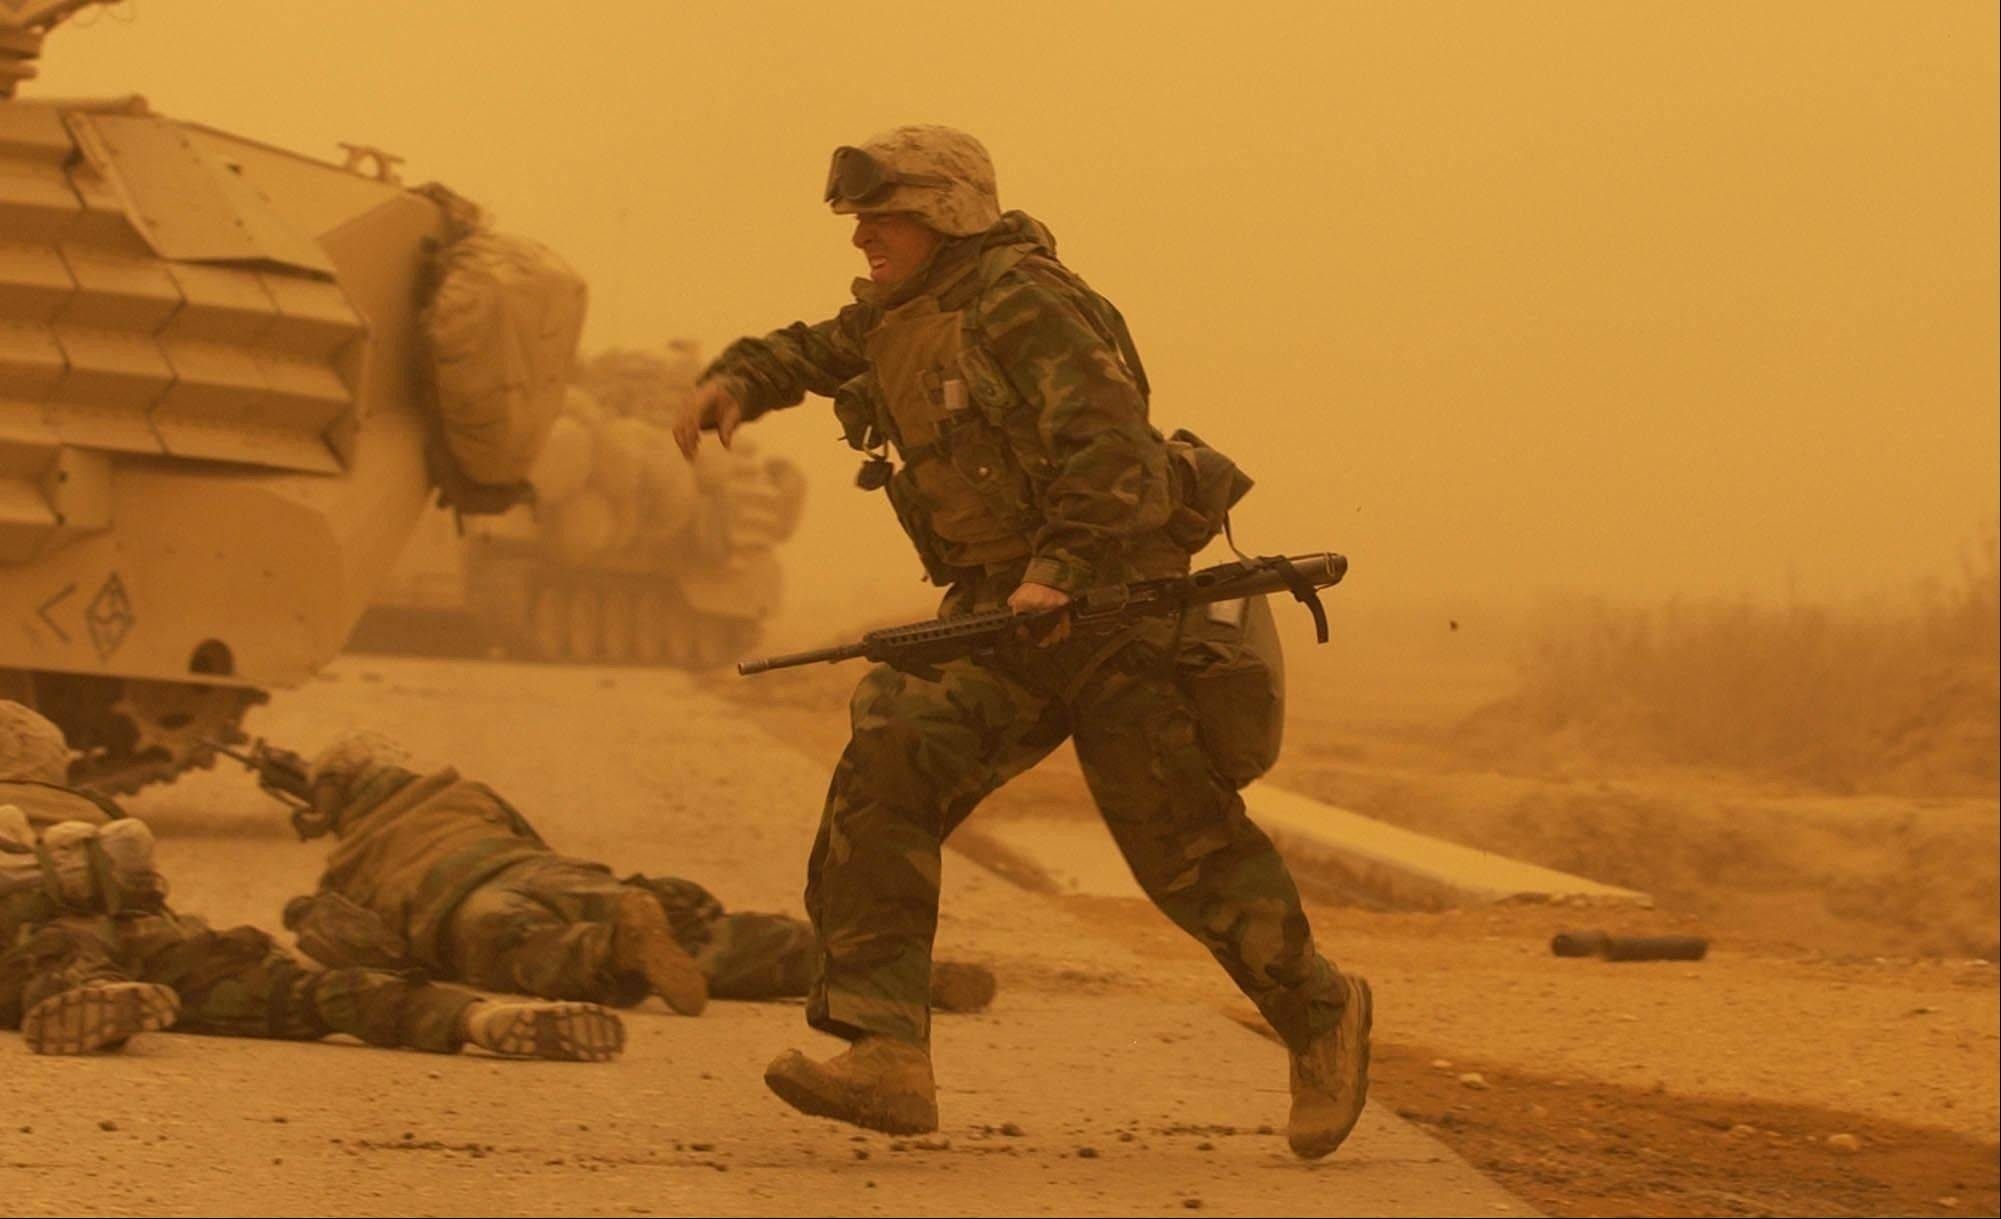 FILE - U.S. Marines with 3rd Battalion, 7th Marines, 1st Marine Division, take cover after a mortar attack during a sandstorm on a road south of Baghdad, Iraq on Wednesday, March 26, 2003.